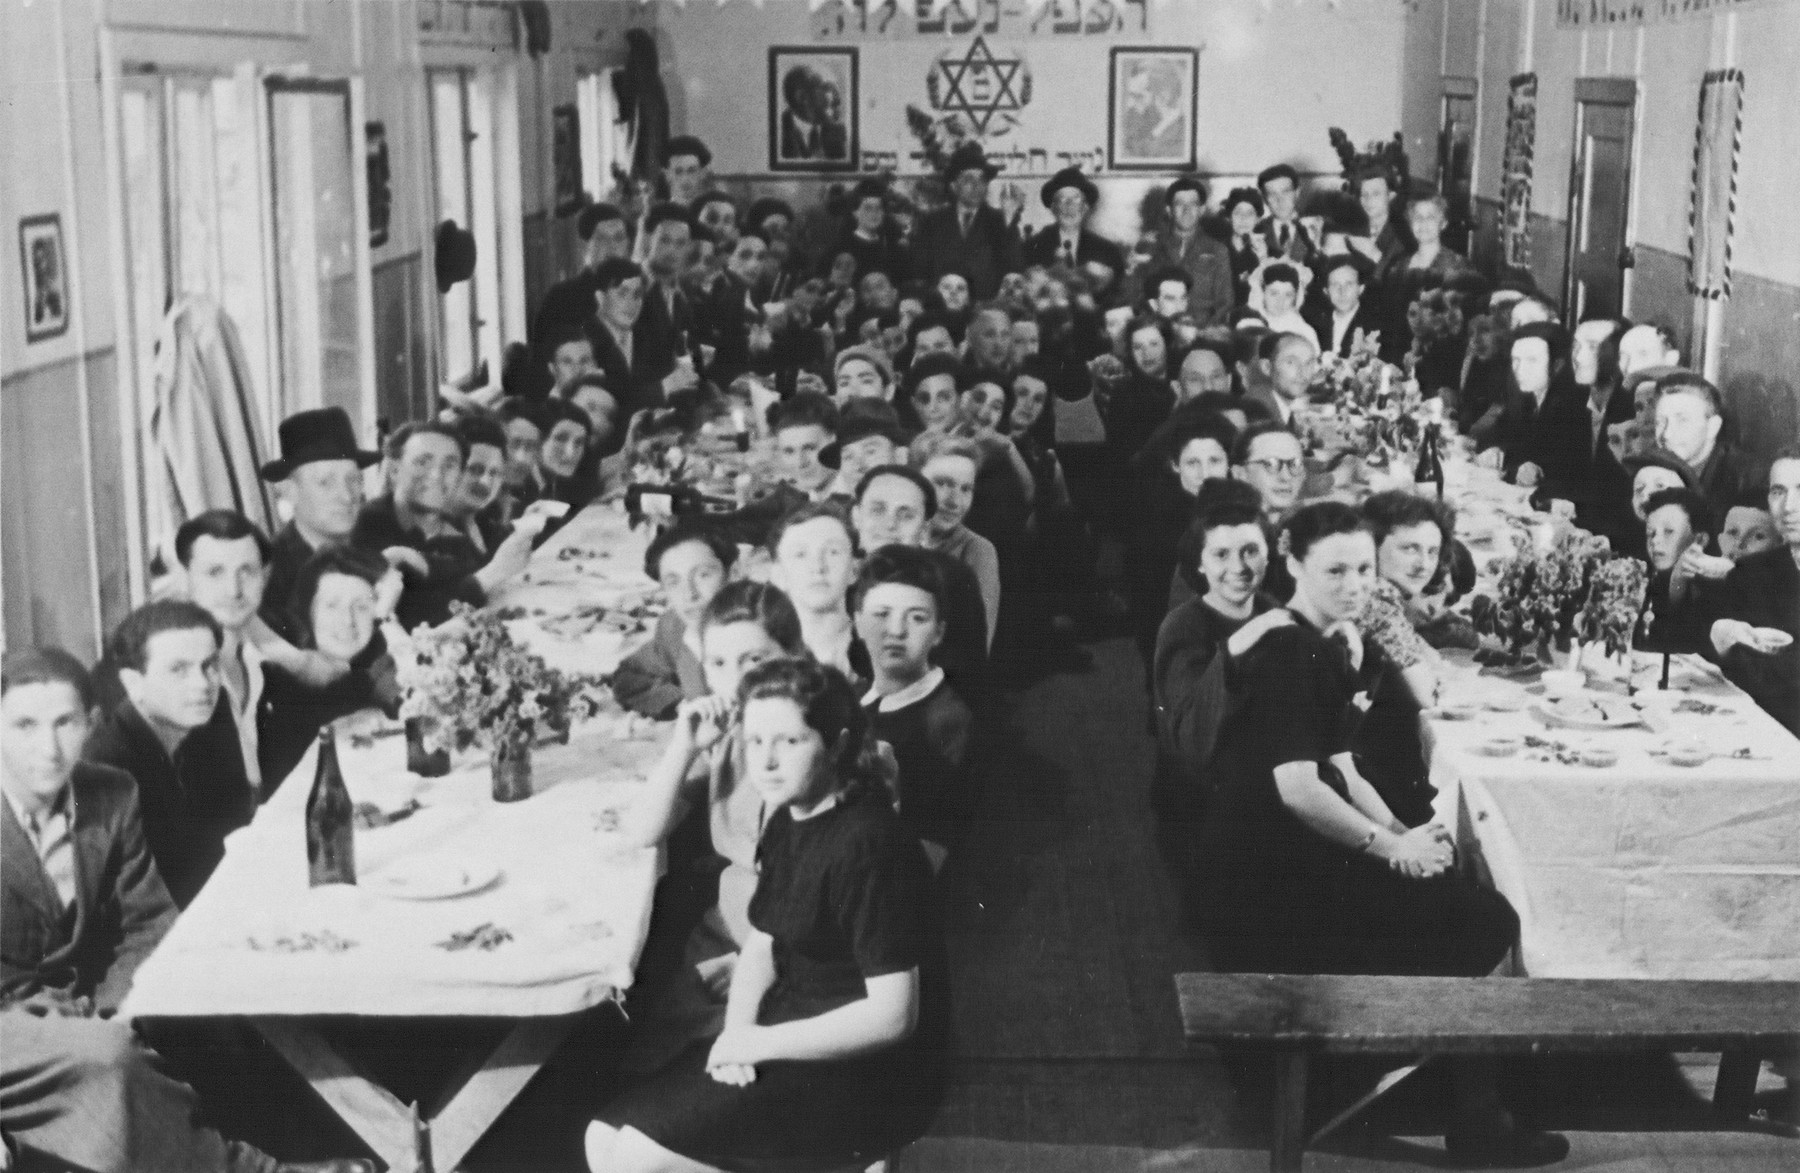 Jewish DPs are gathered around long tables at a [wedding] celebration in the Schlachtensee displaced persons camp.